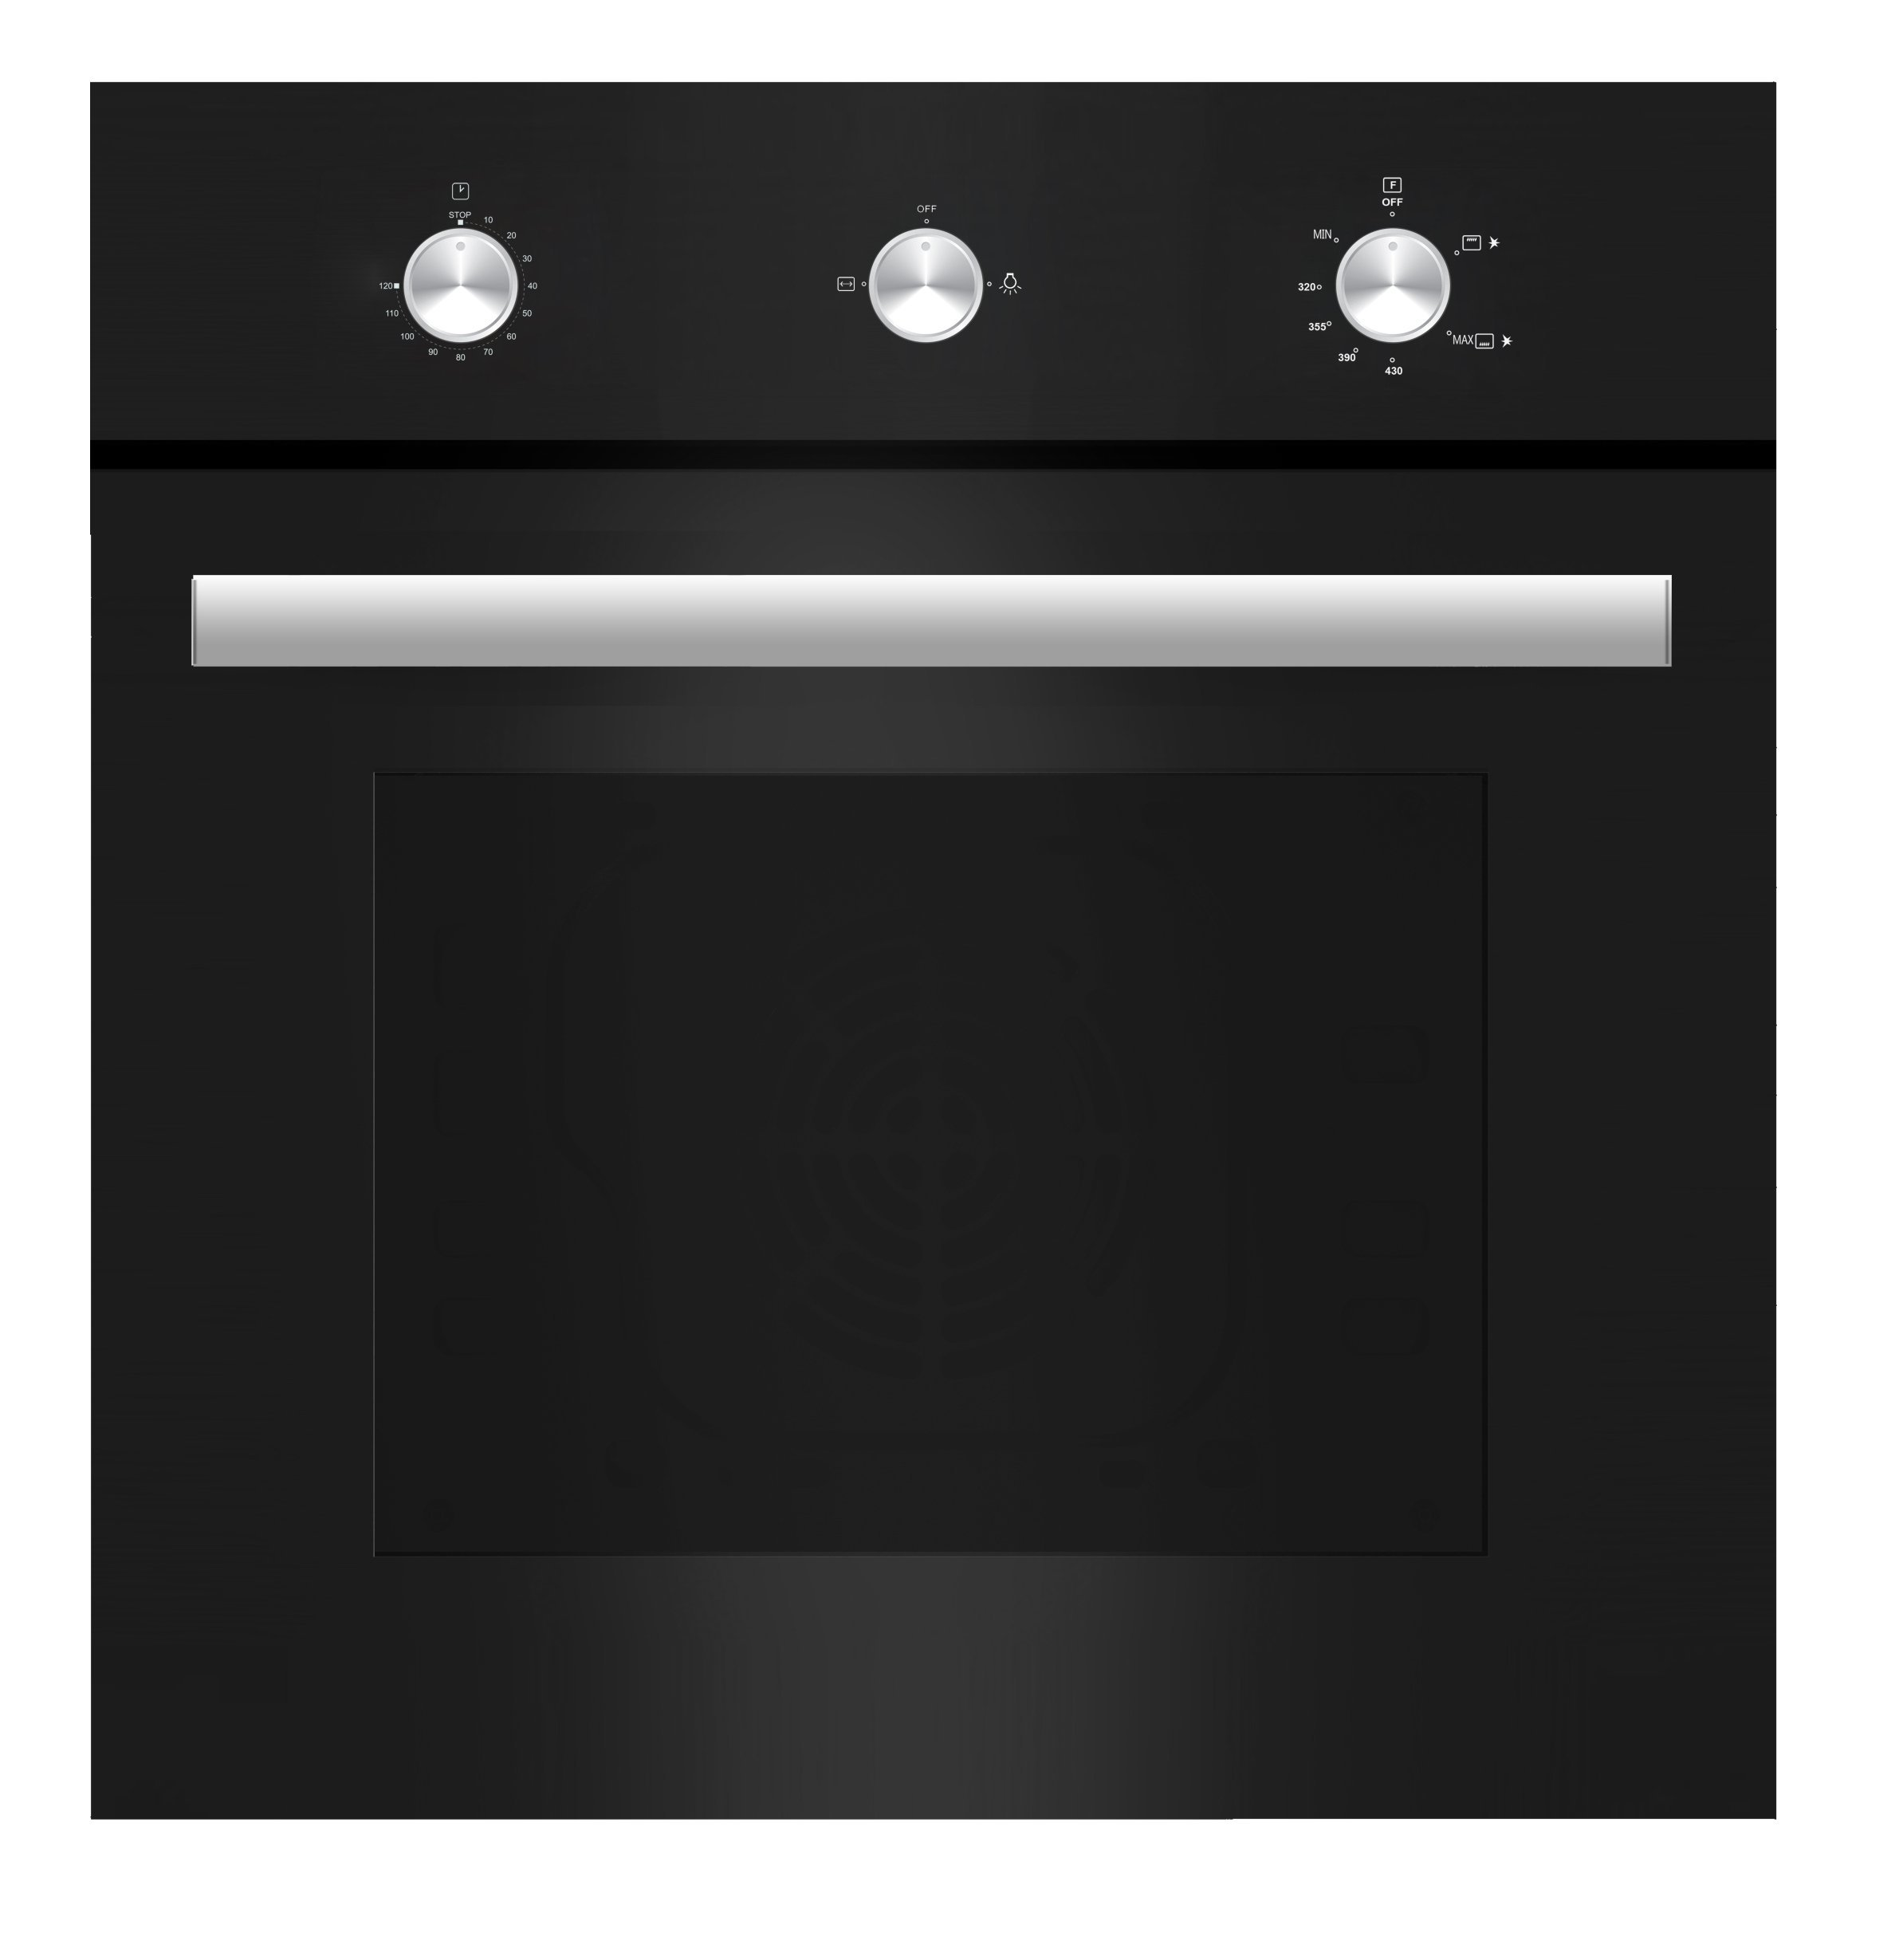 "Empava 24"" Tempered Glass Built-in Single Gas Wall Oven 1500W Black"